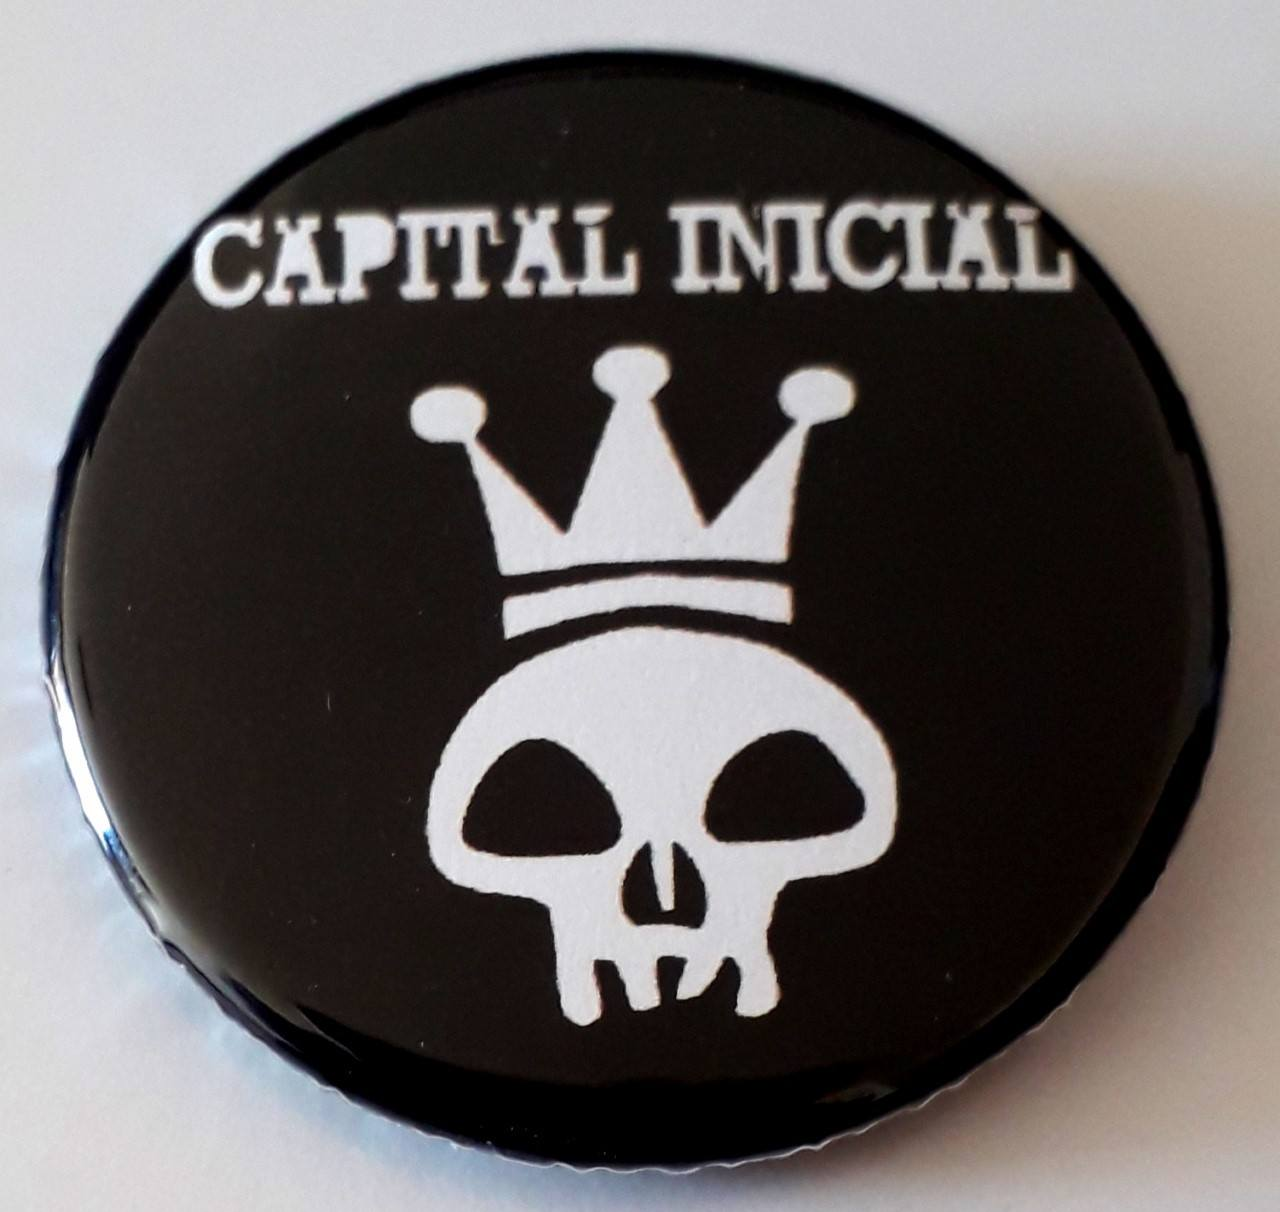 Botton  Capital Inicial